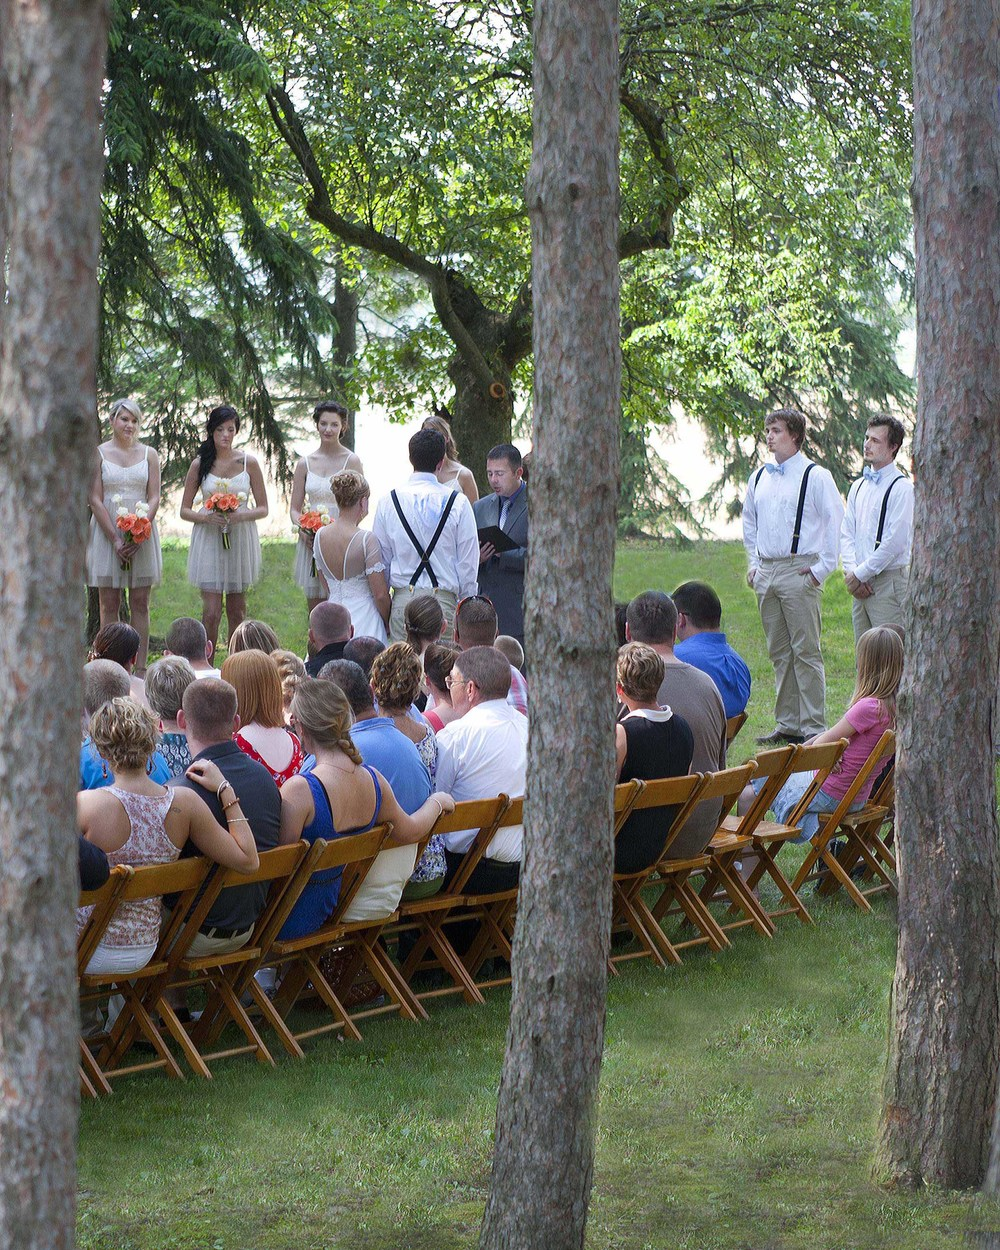 Wedding in one of the wooded areas